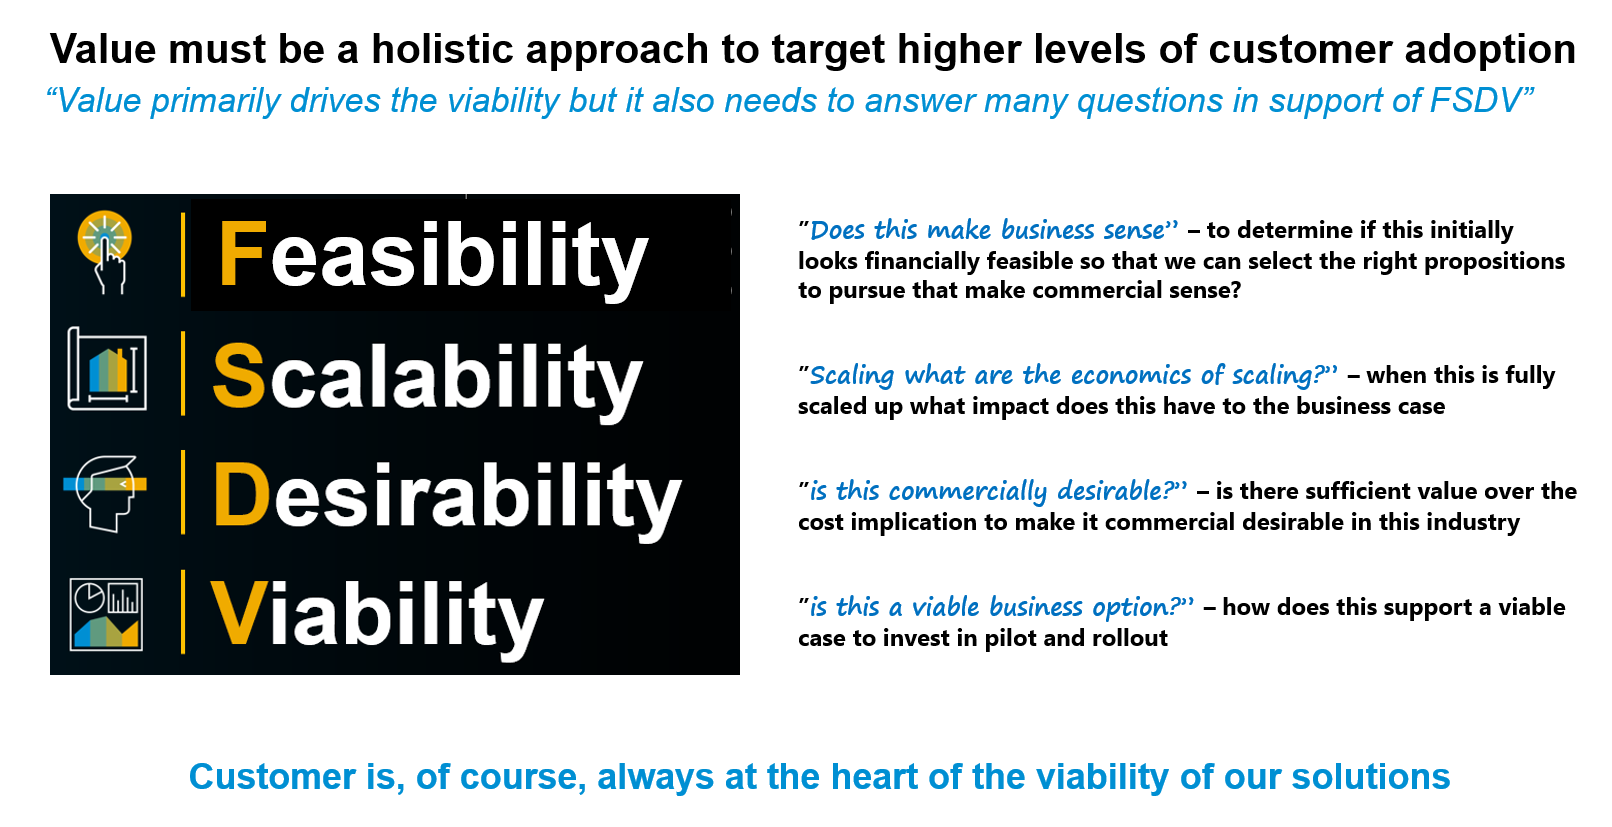 Four%20dimensions%20of%20value%3A%20Feasibility%2C%20scalability%2C%20desirability%2C%20and%20viability